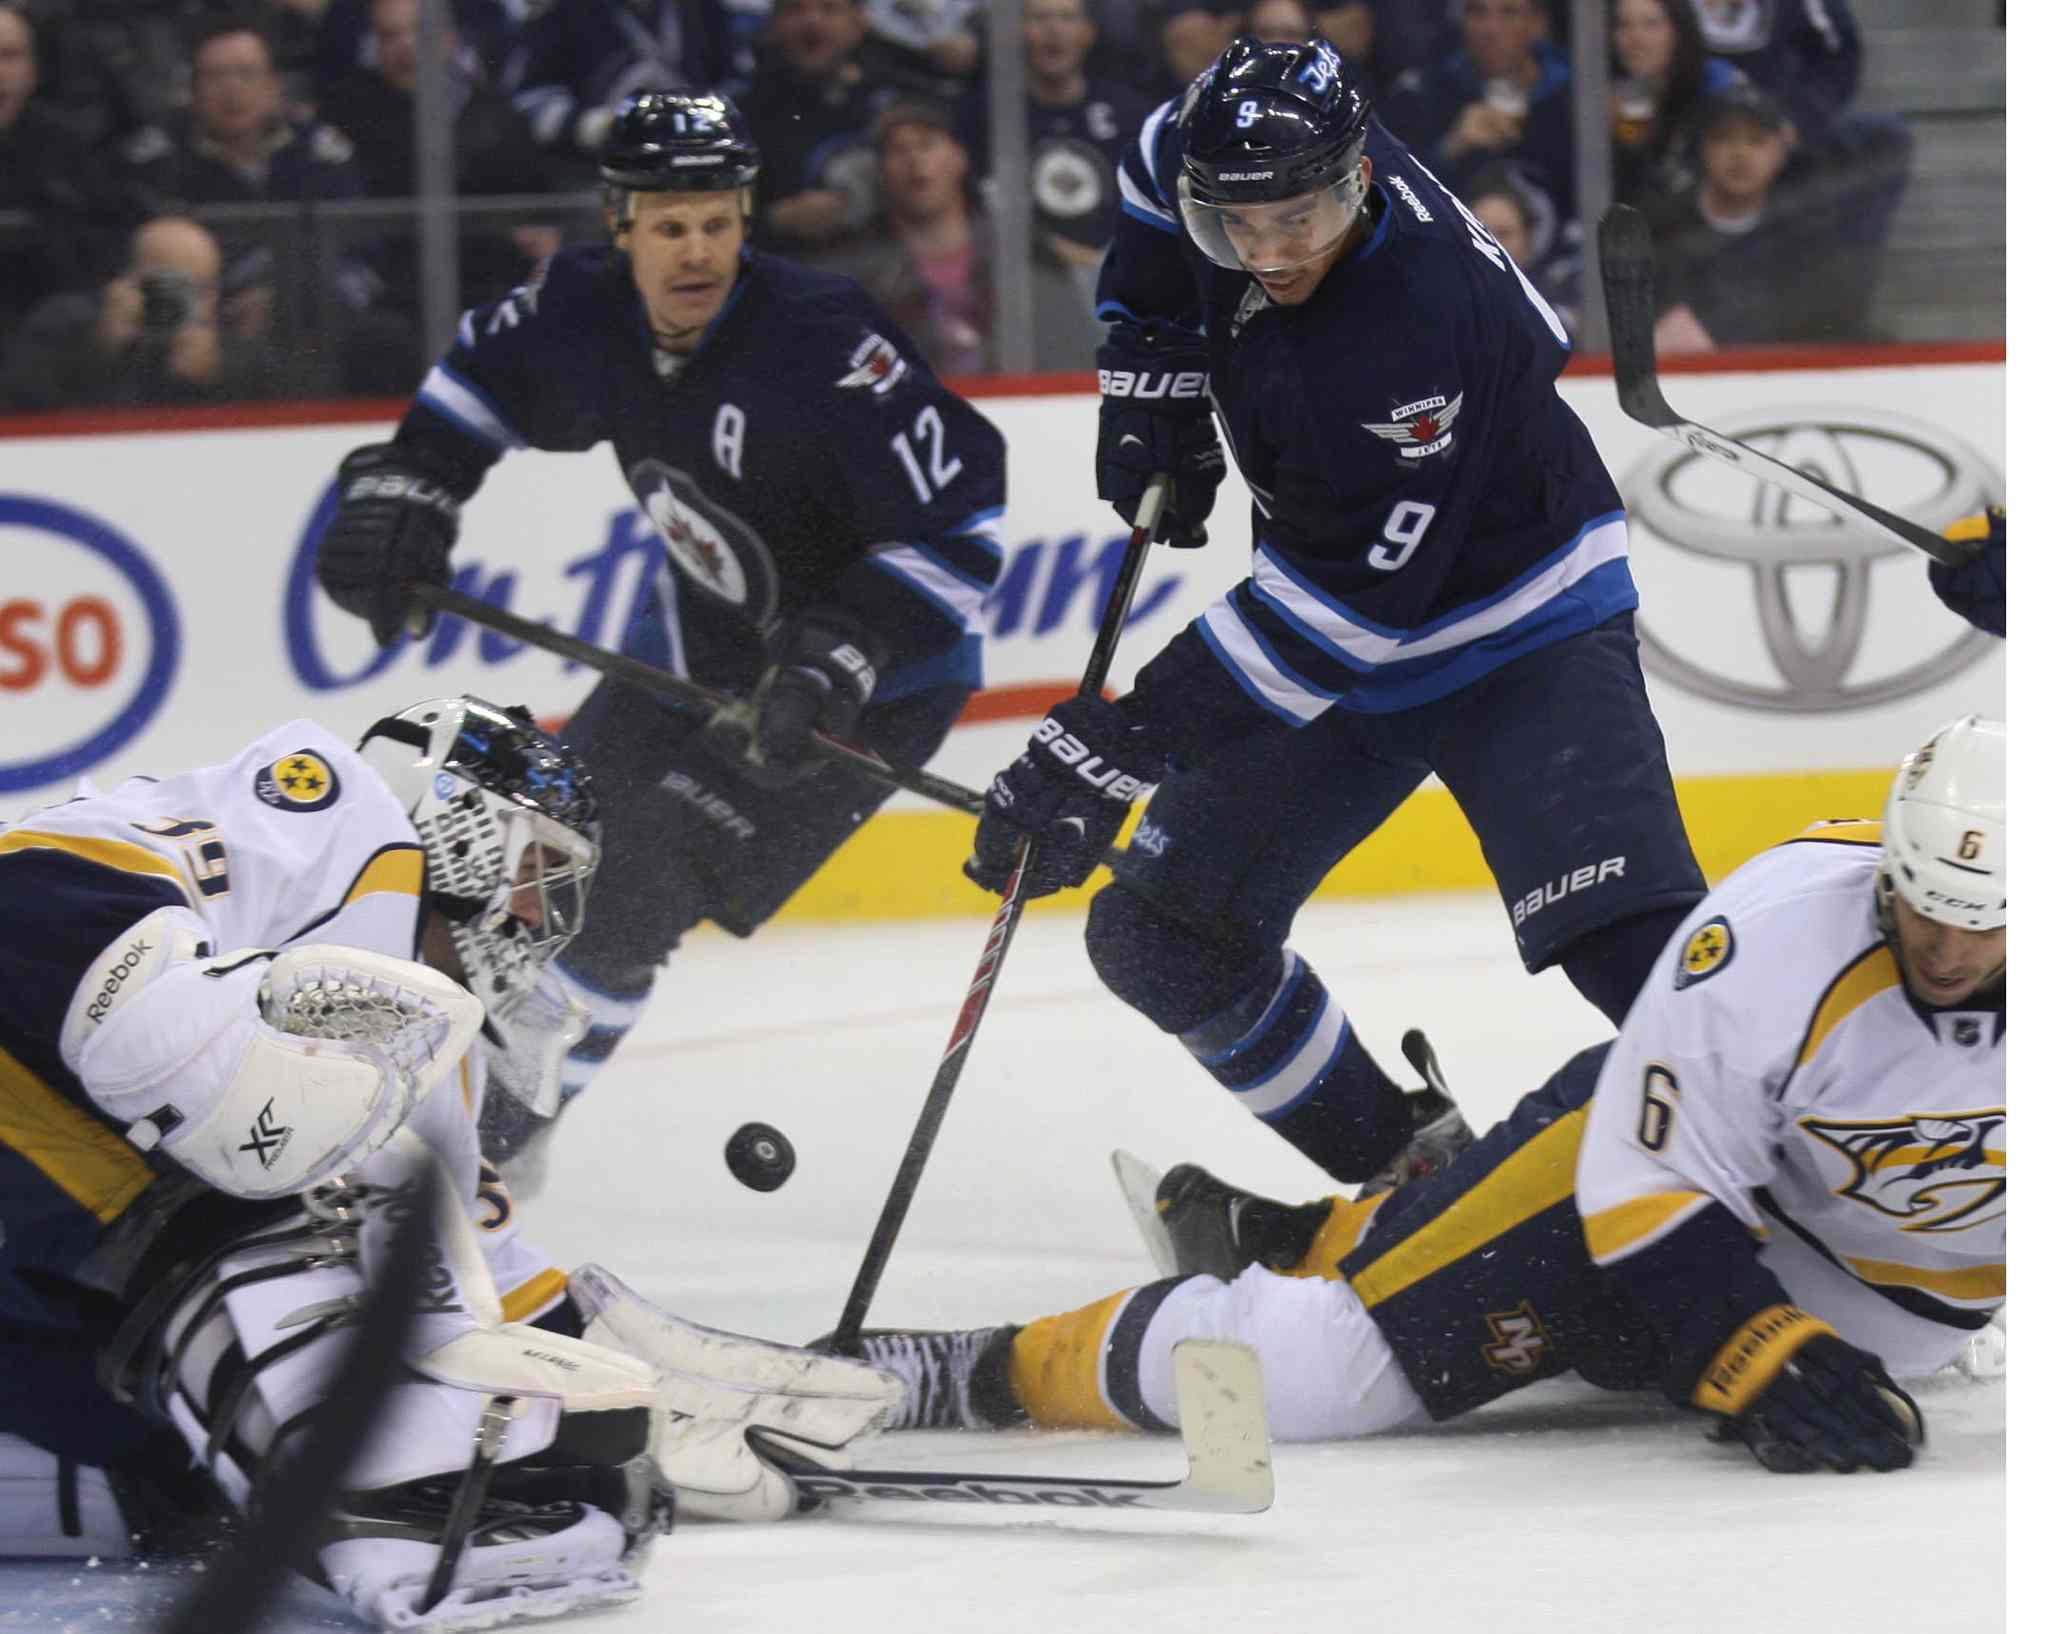 Evander Kane (9) chases the puck in front of Nashville Predators goaltender Marek Mazanec during the second period as Olli Jokinen (12) looks on.